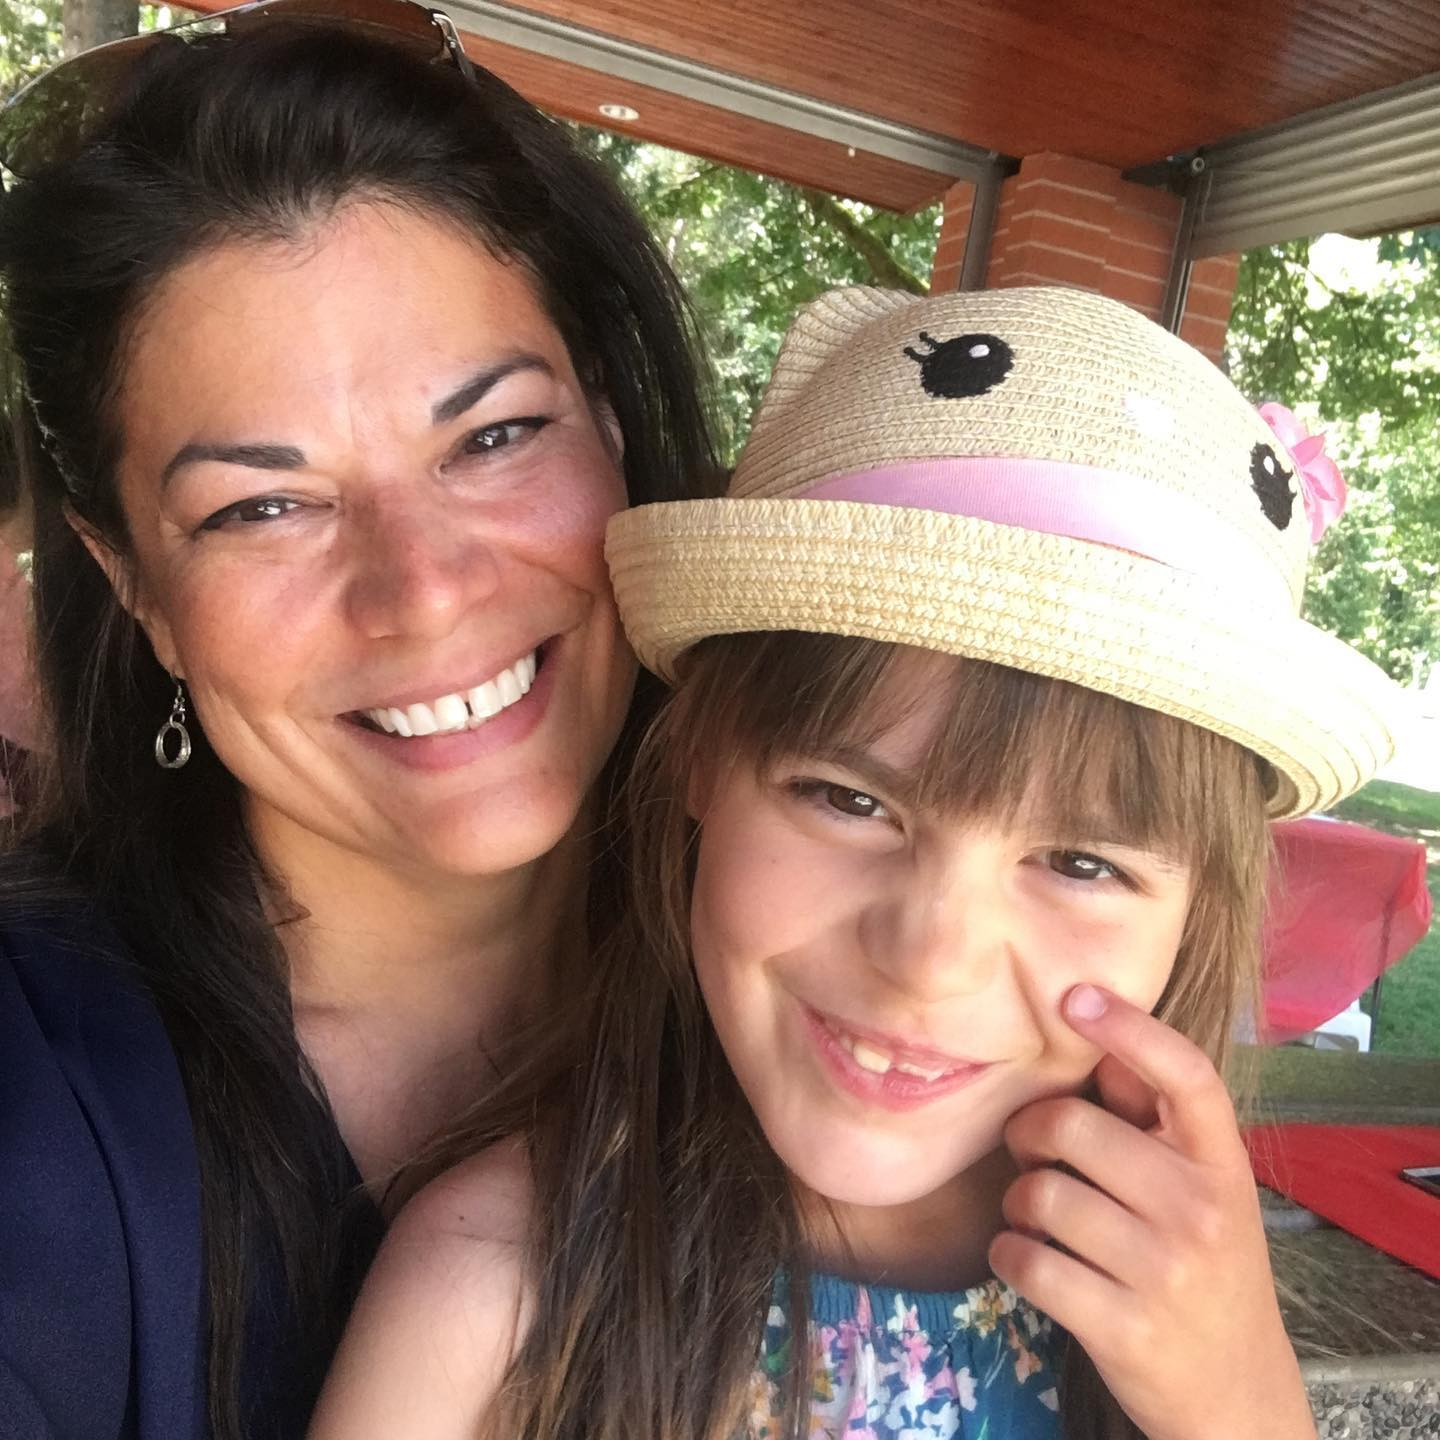 BFCM roundup, Satya founder Patrice Mousseau taking a selfie with her daughter Esma